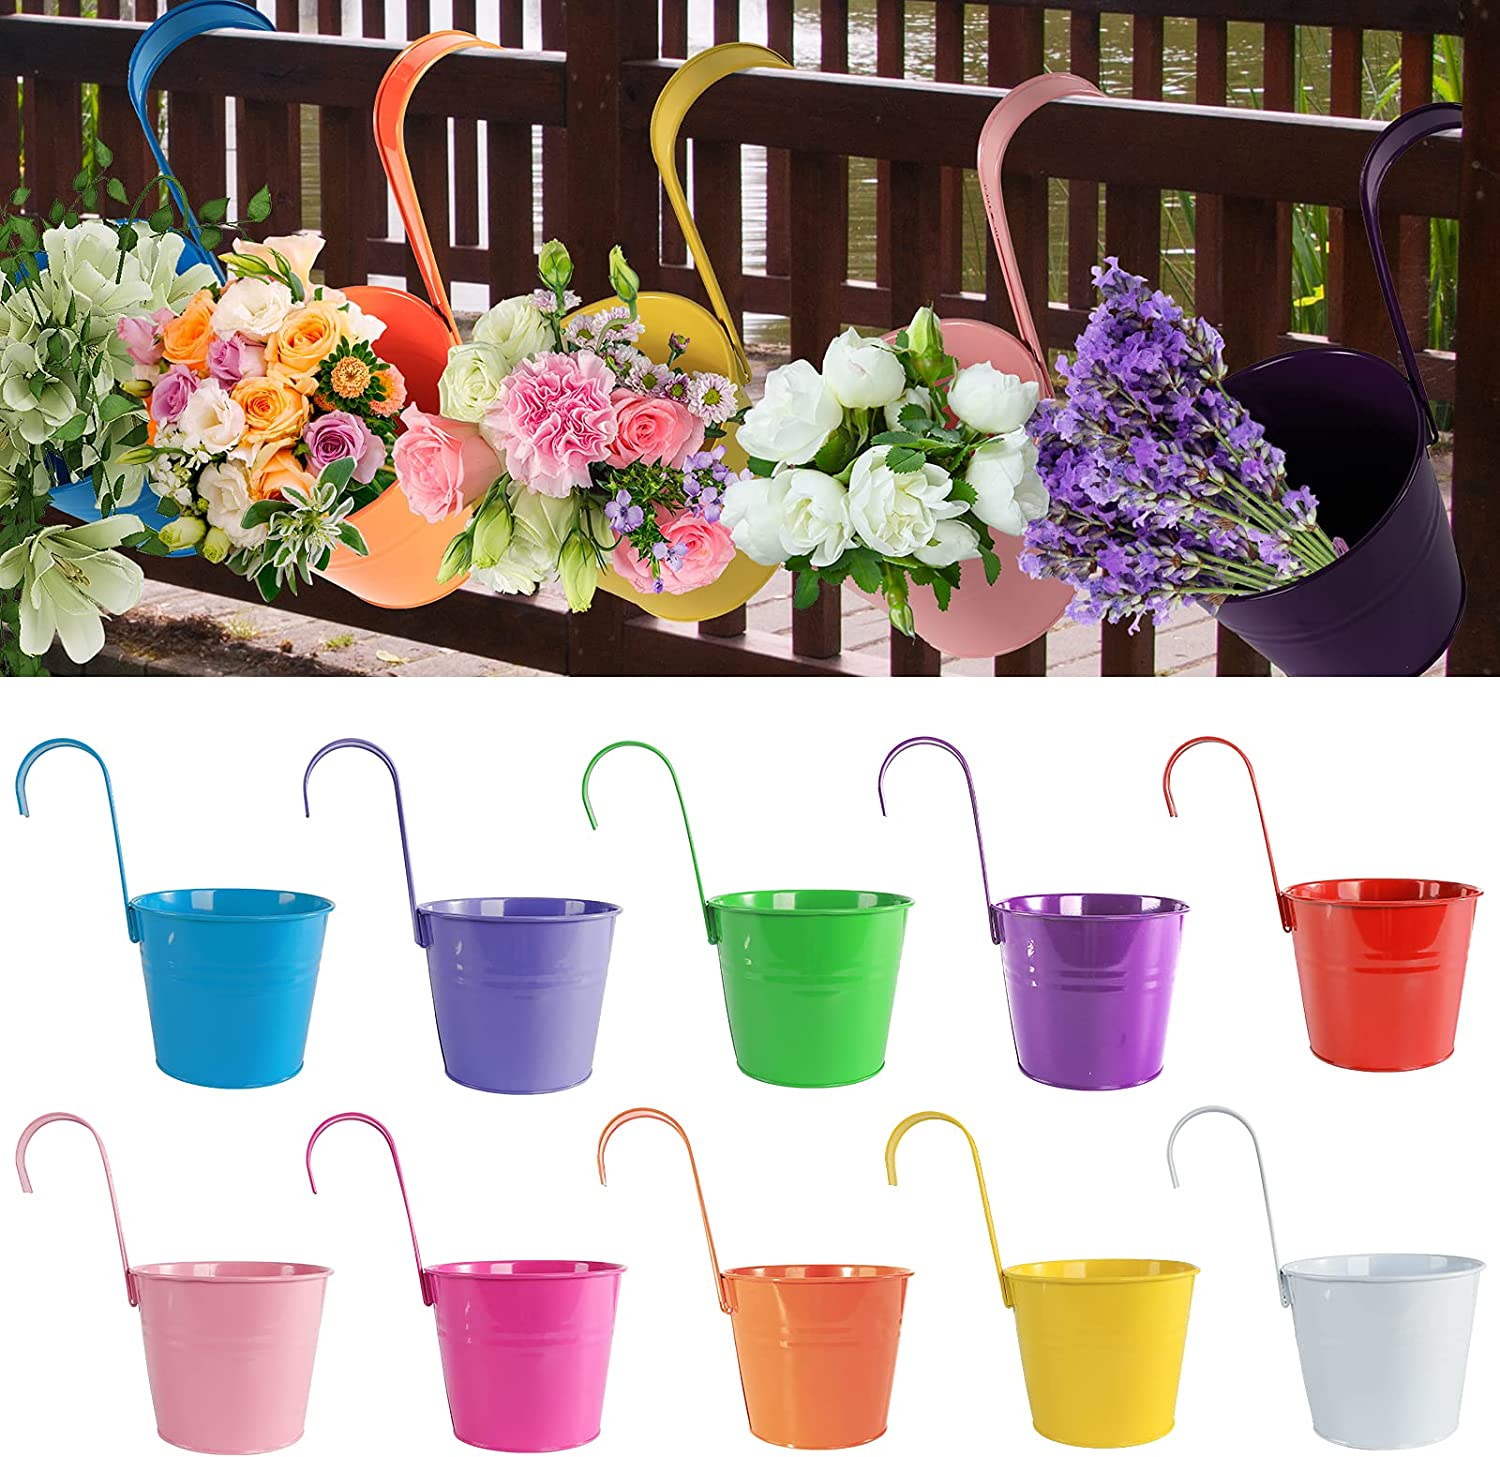 """Super special price Hanging Flower Pots 10 Pack Max 72% OFF 6.4"""" Fence x 5.2"""" Plant 4.7"""" Iron"""